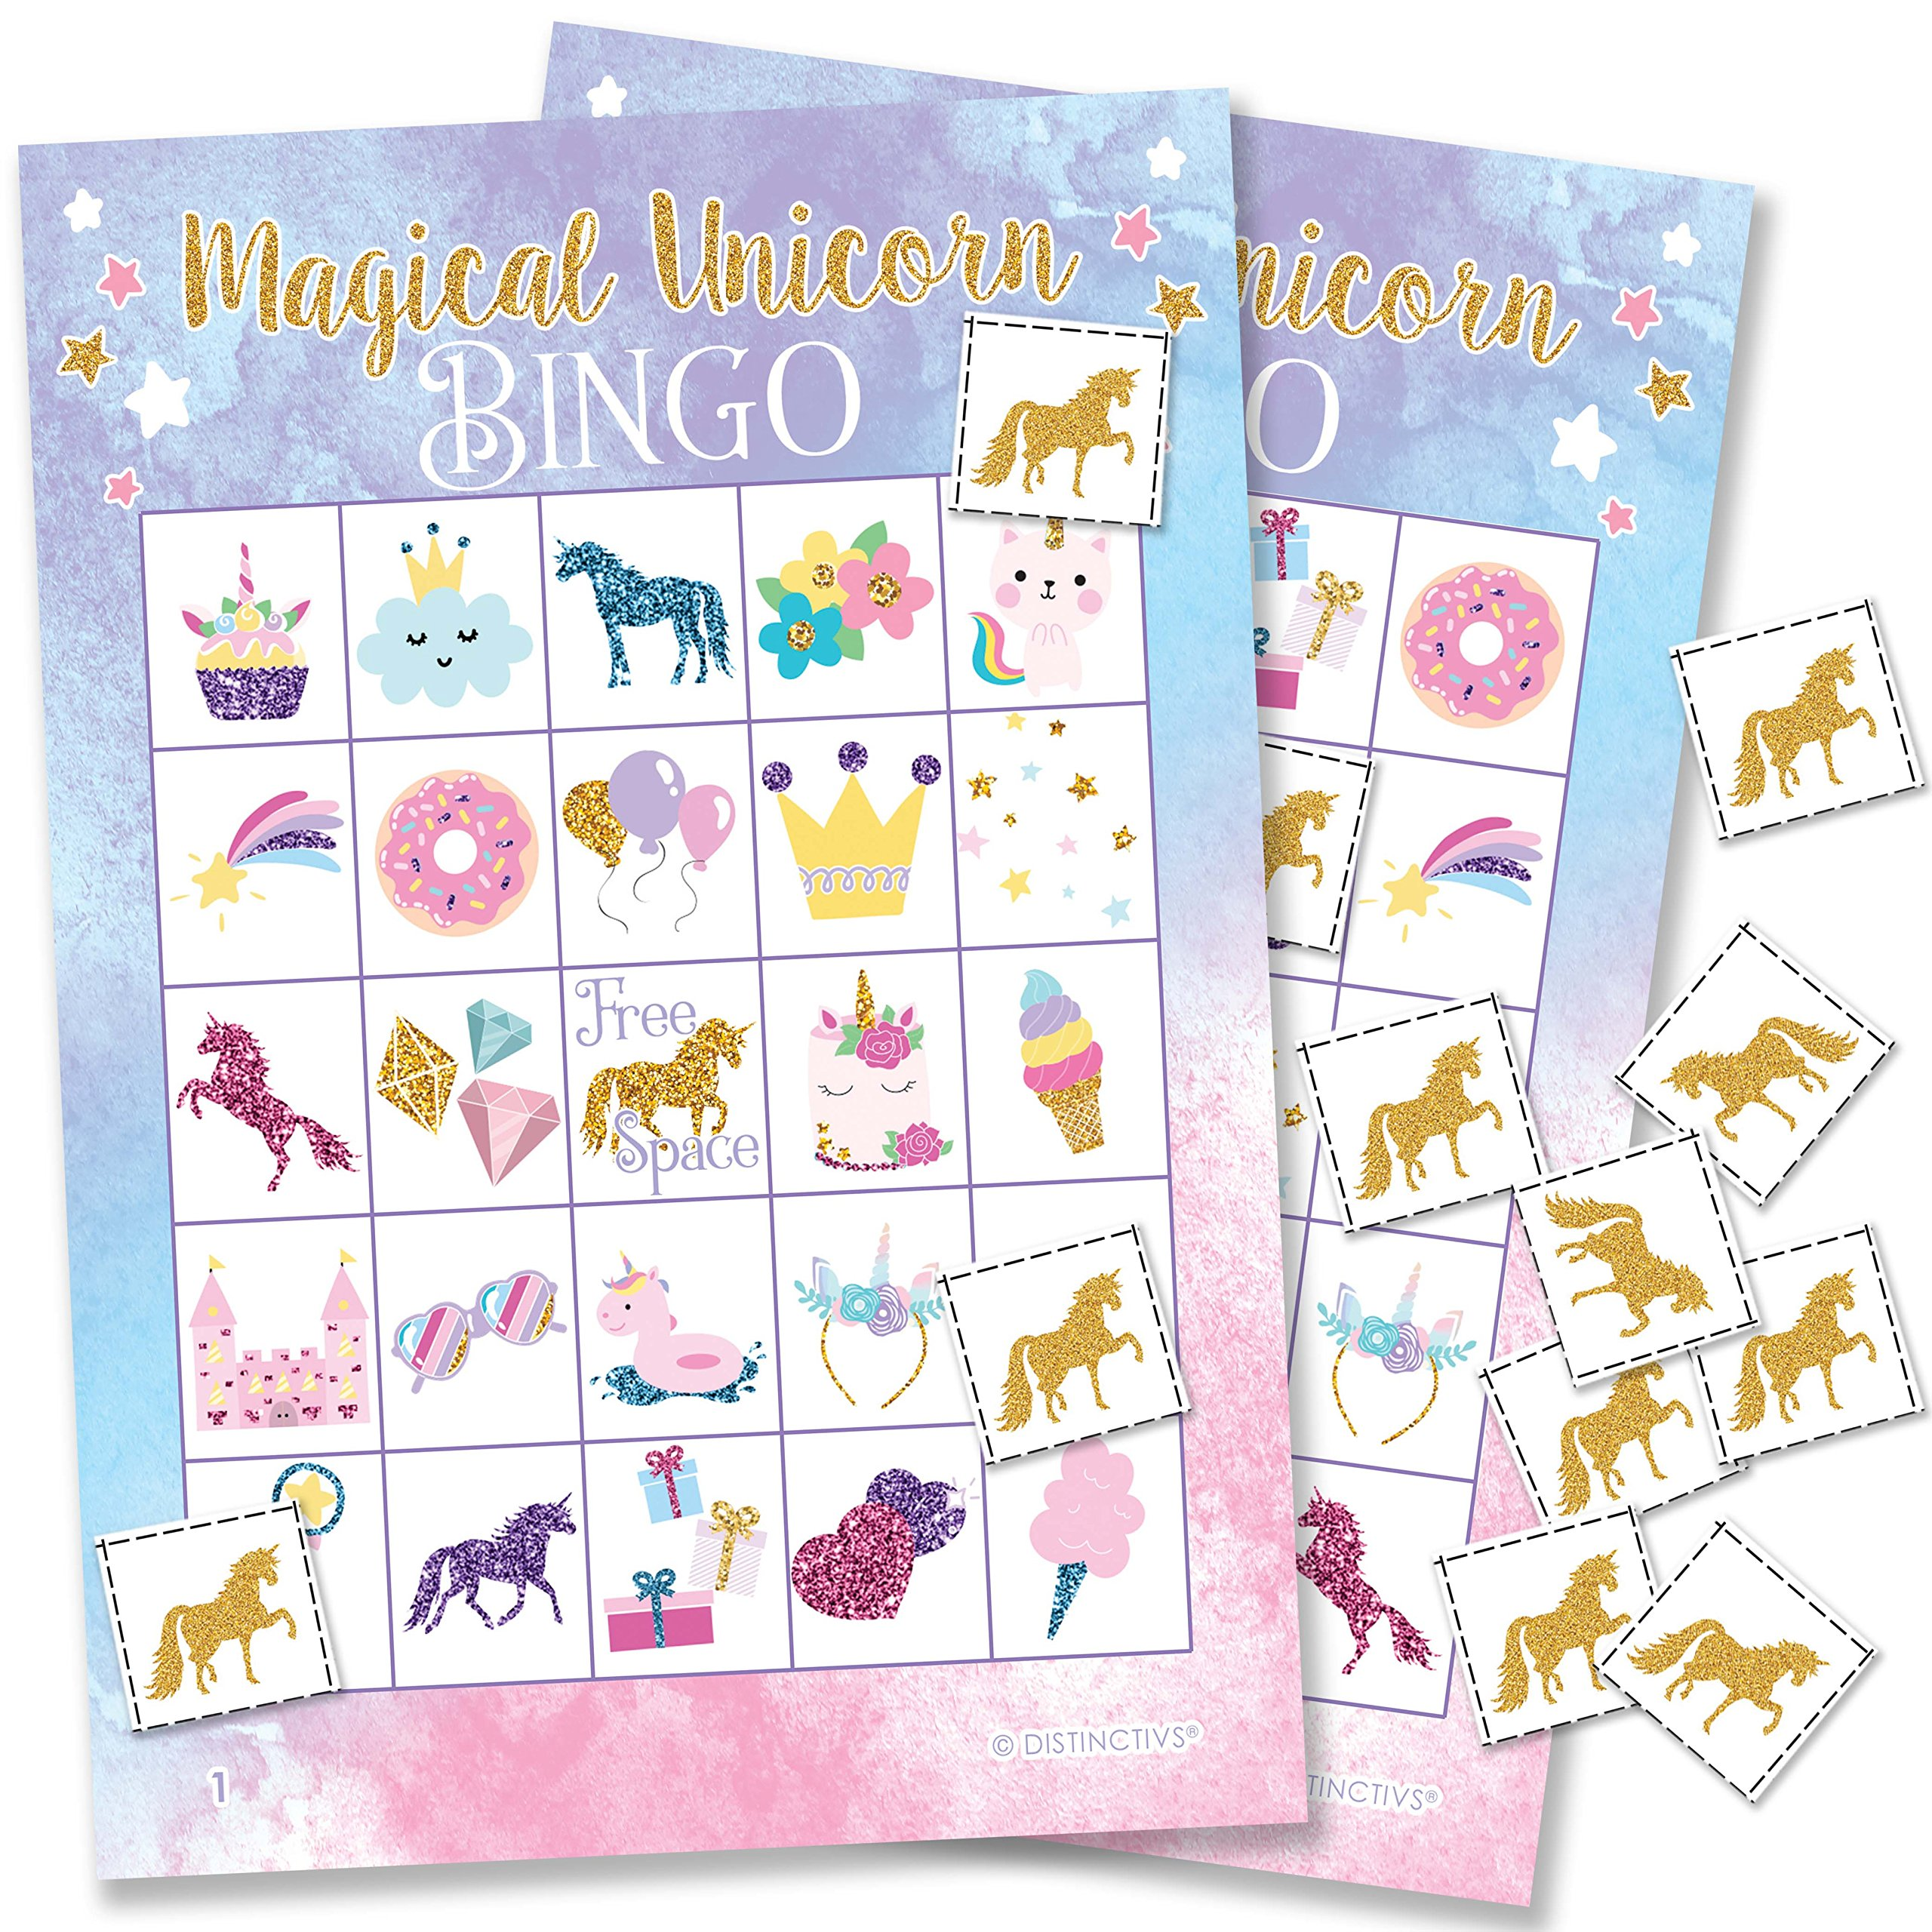 Magical Unicorn Bingo Game - 24 Players by DISTINCTIVS